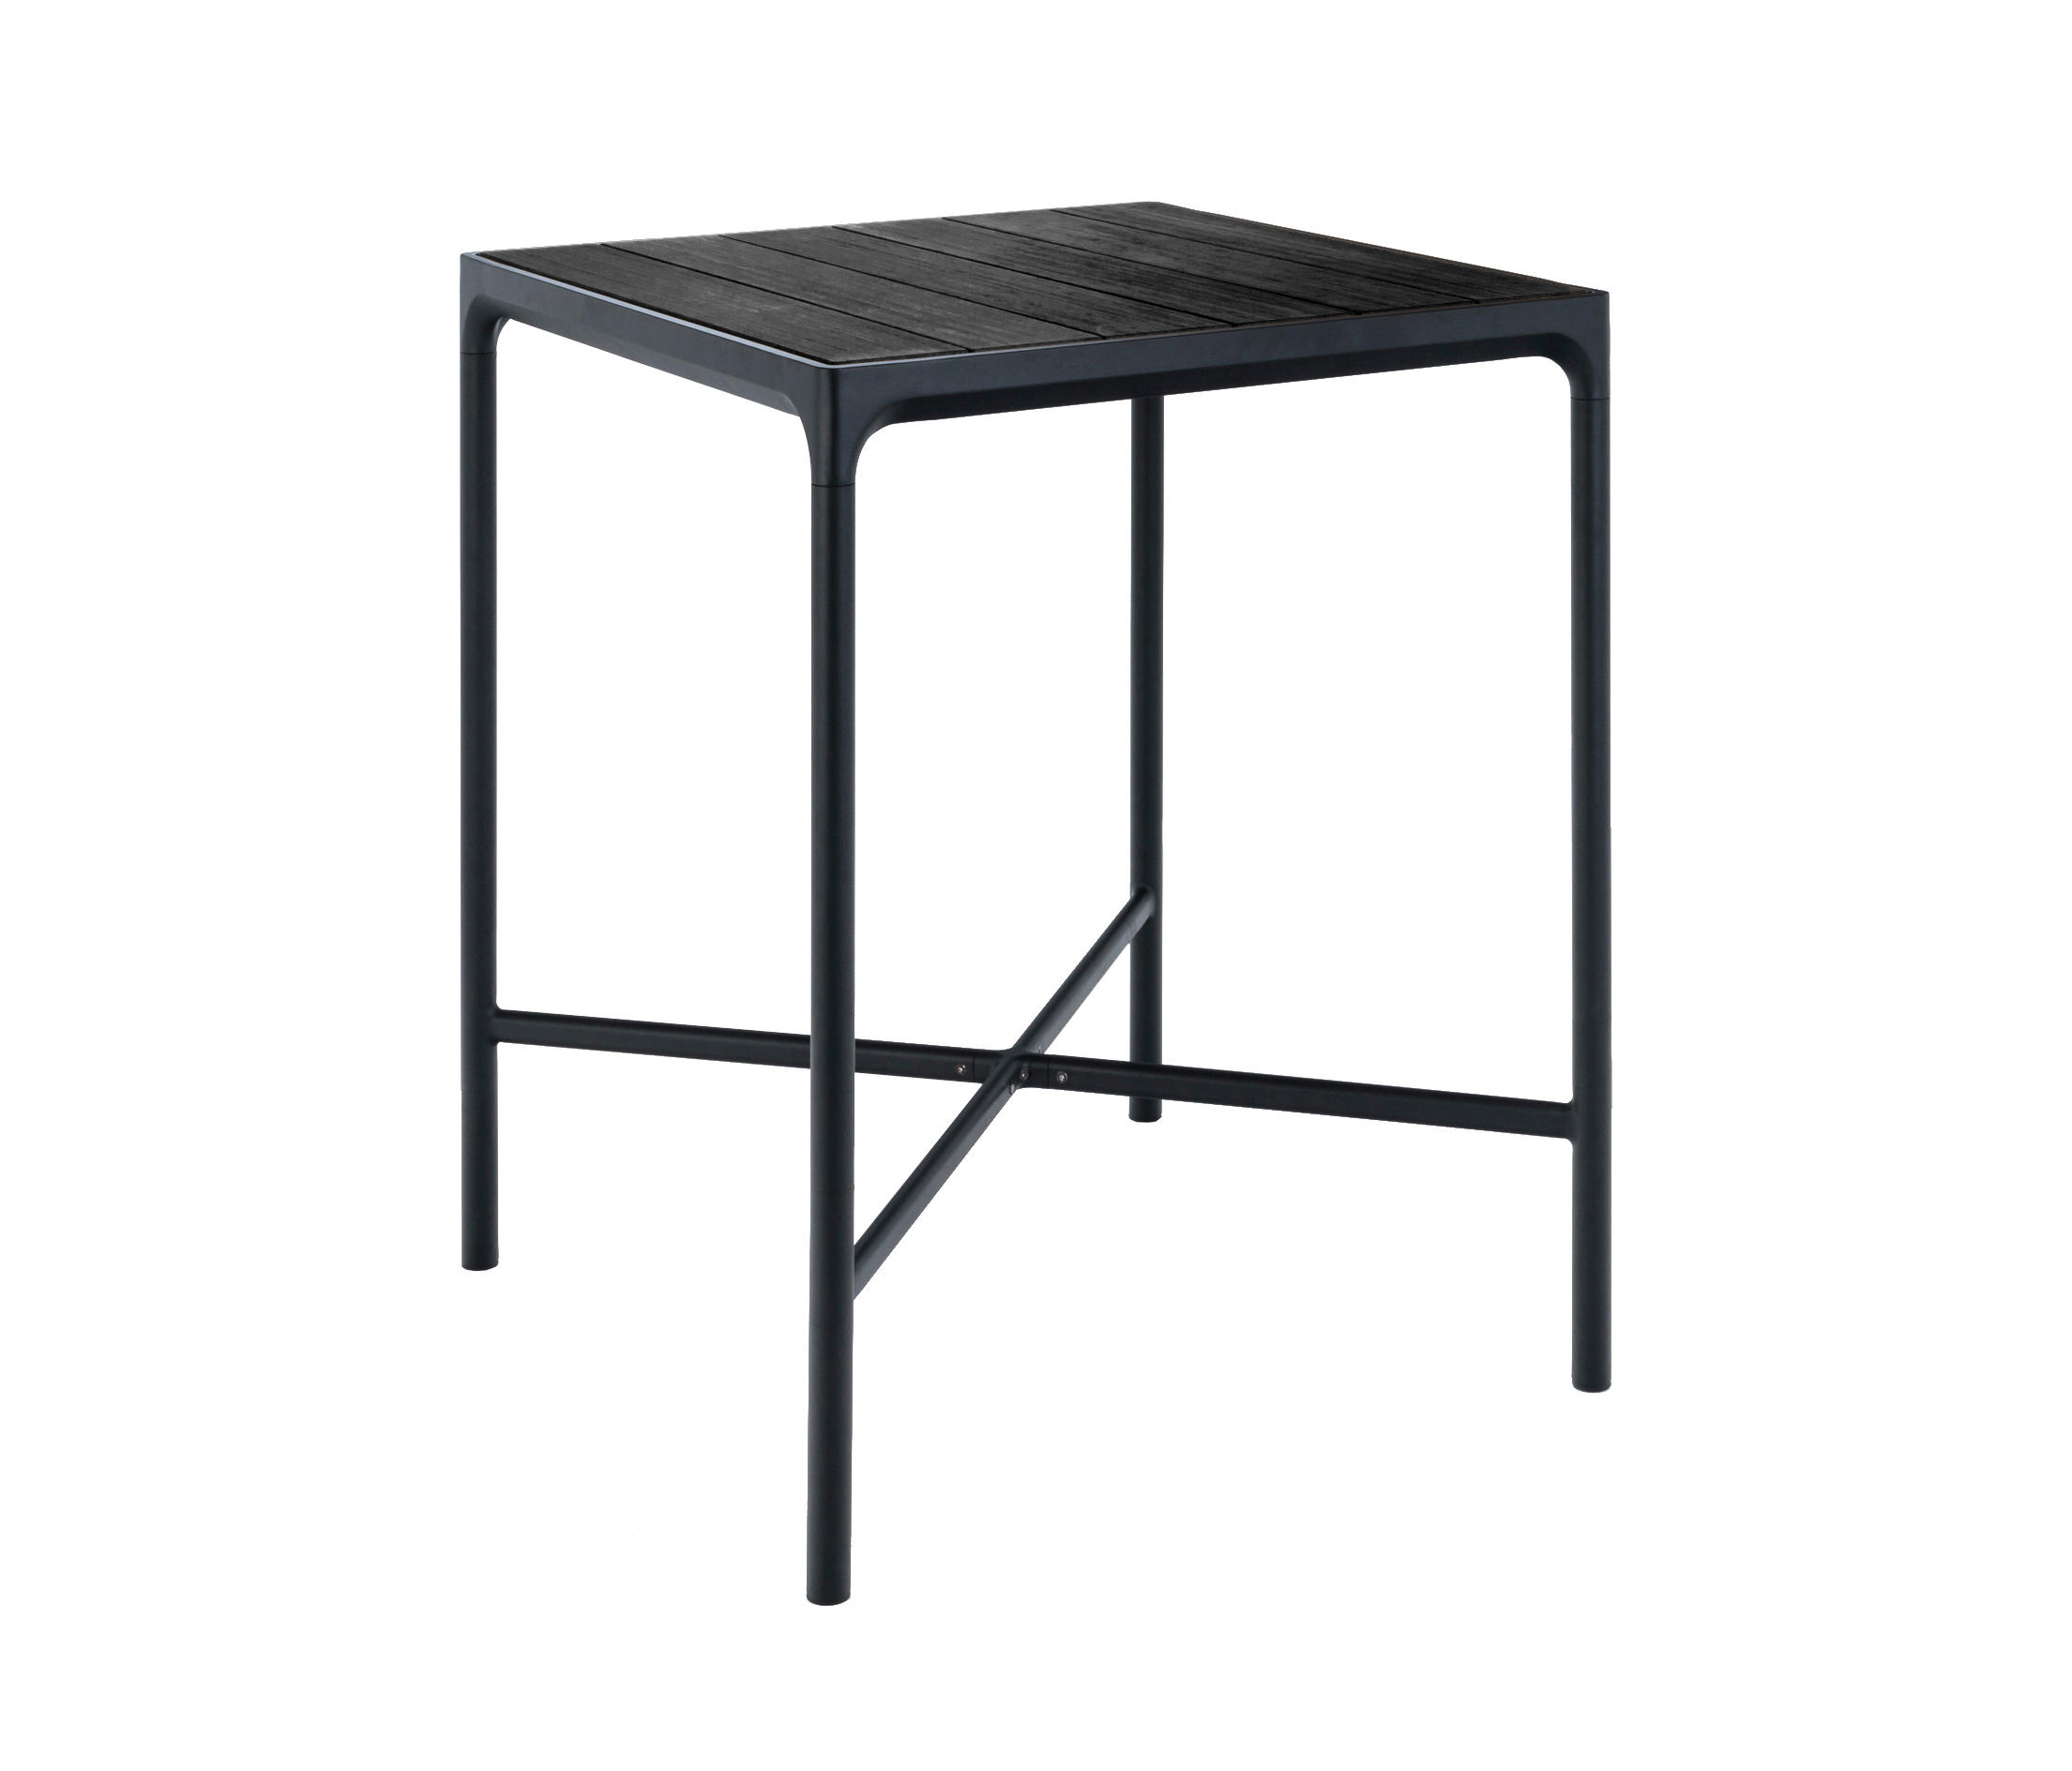 four bar table 90x90 aluminum standing tables from houe architonic. Black Bedroom Furniture Sets. Home Design Ideas